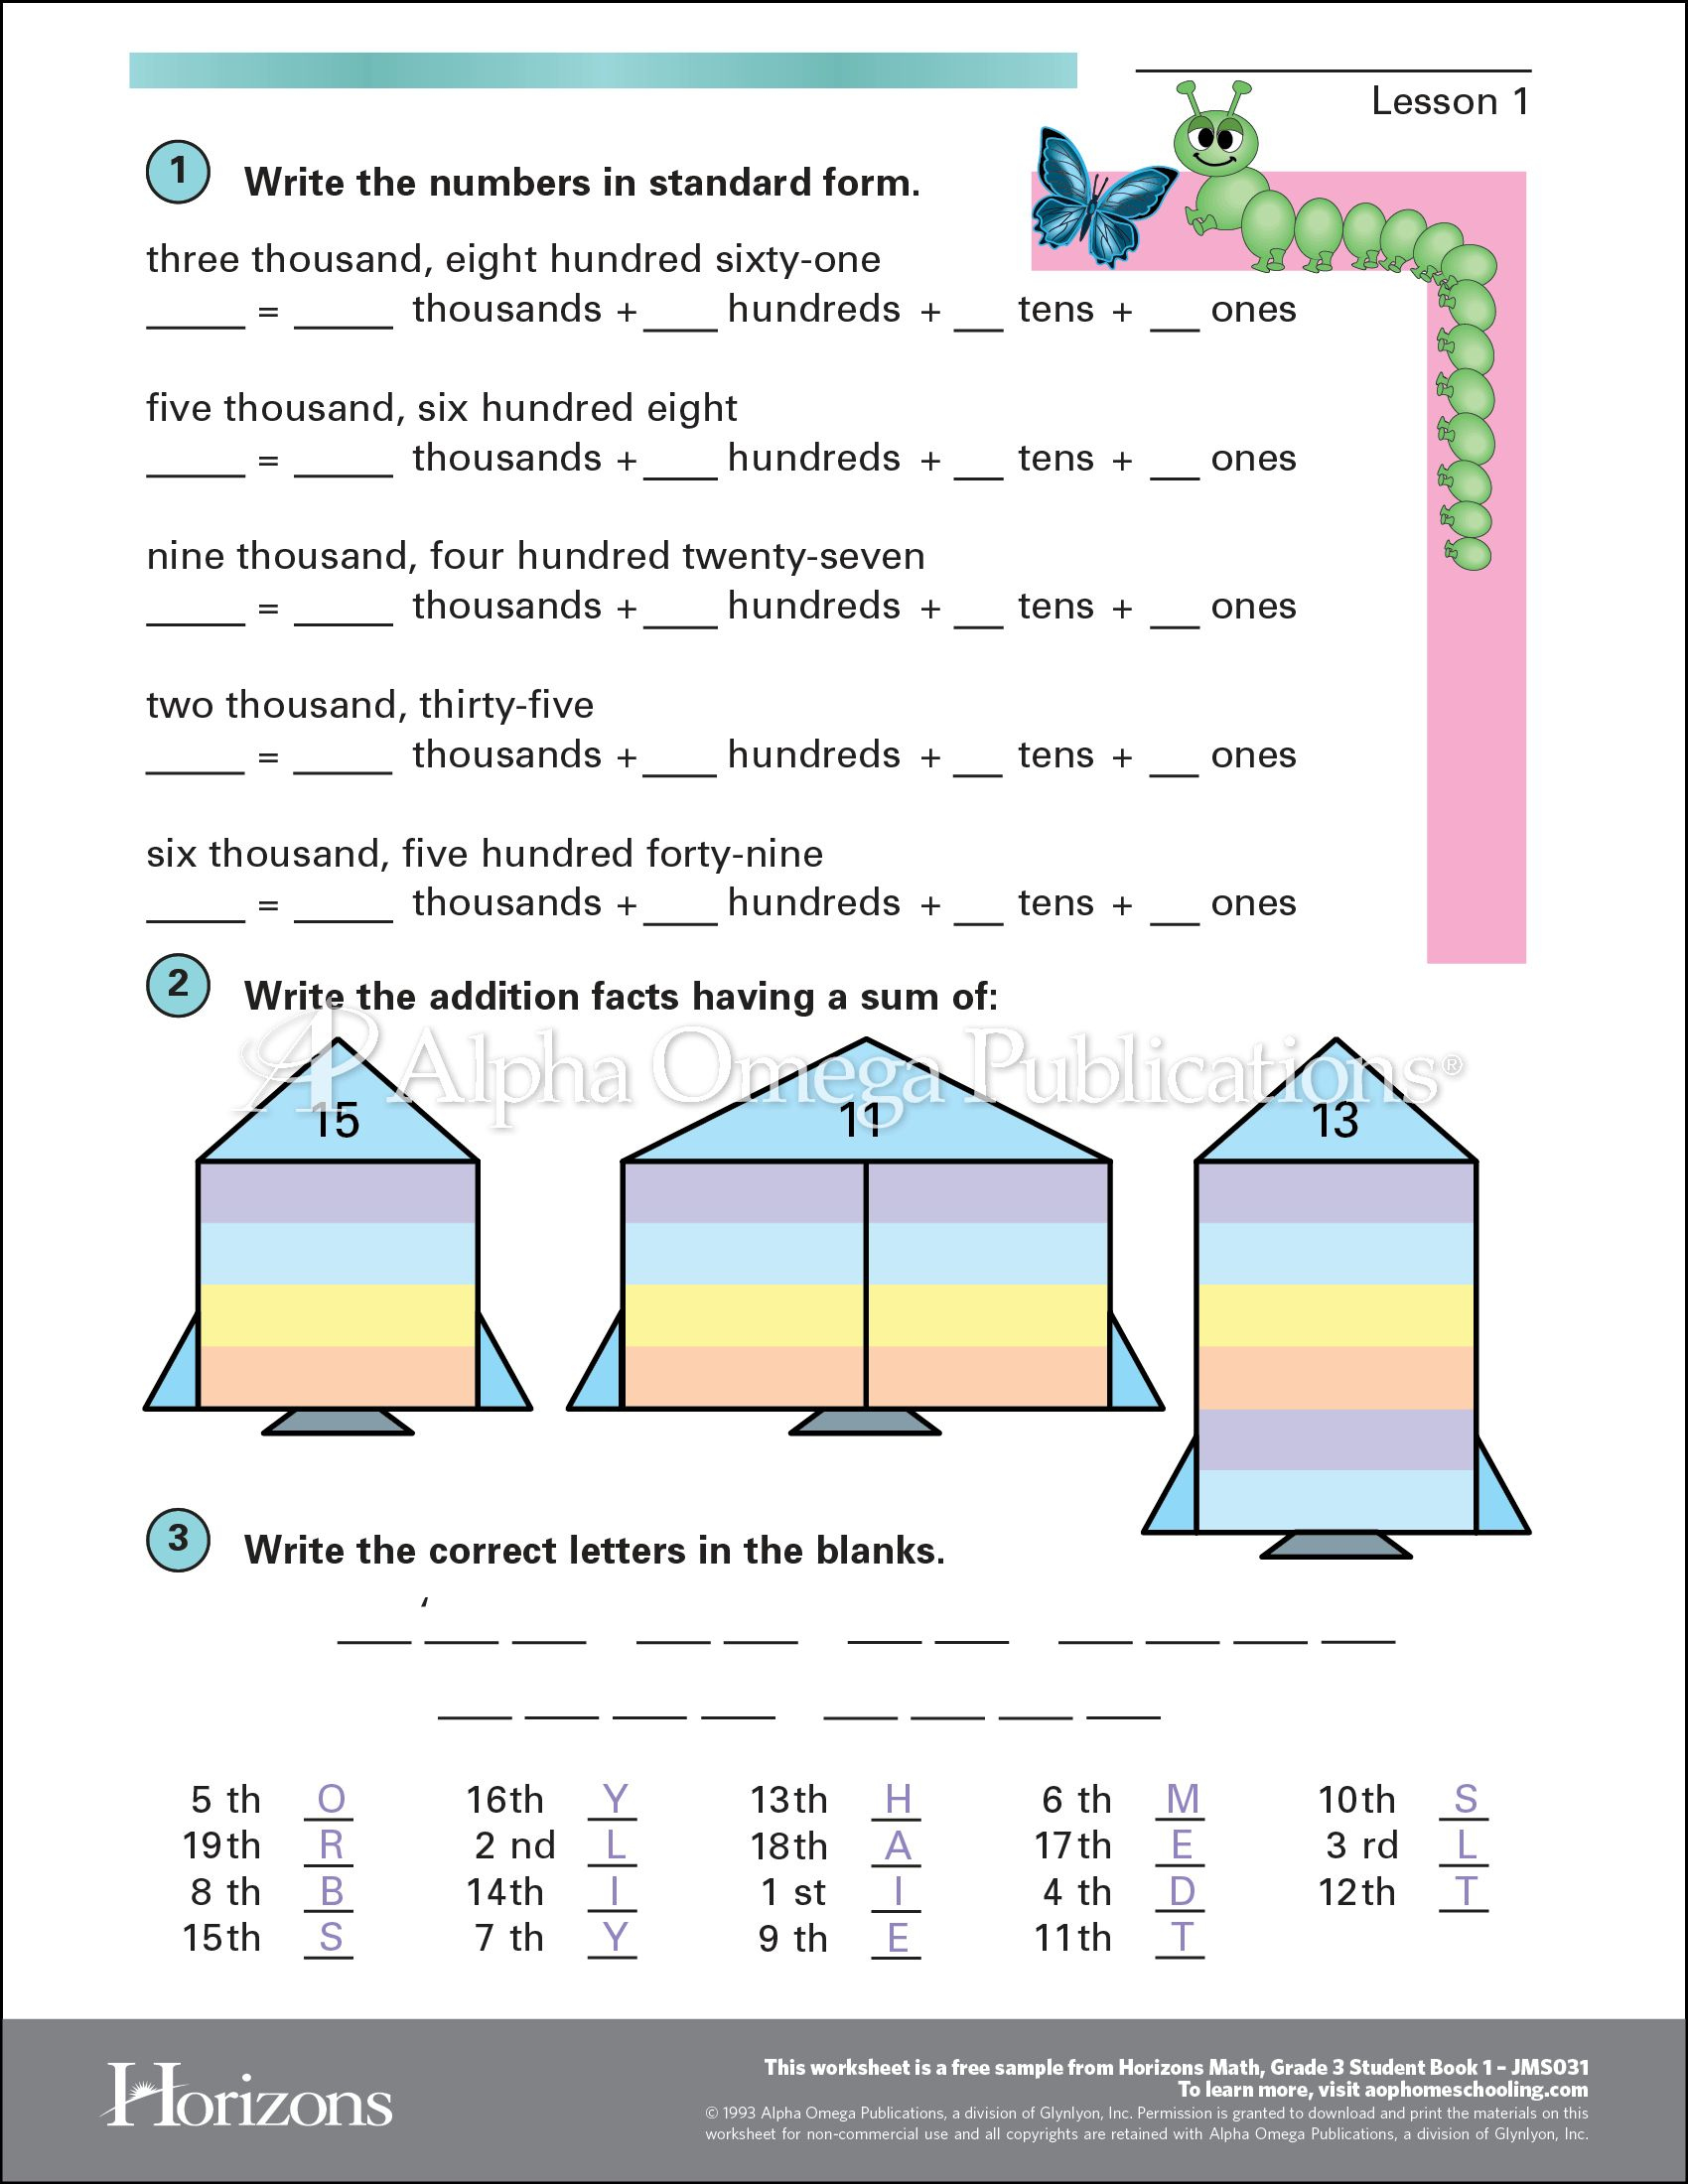 Printables Homeschool Curriculum Free Worksheets aop horizons free printable worksheet sample page download for homeschooling from alpha omega publications